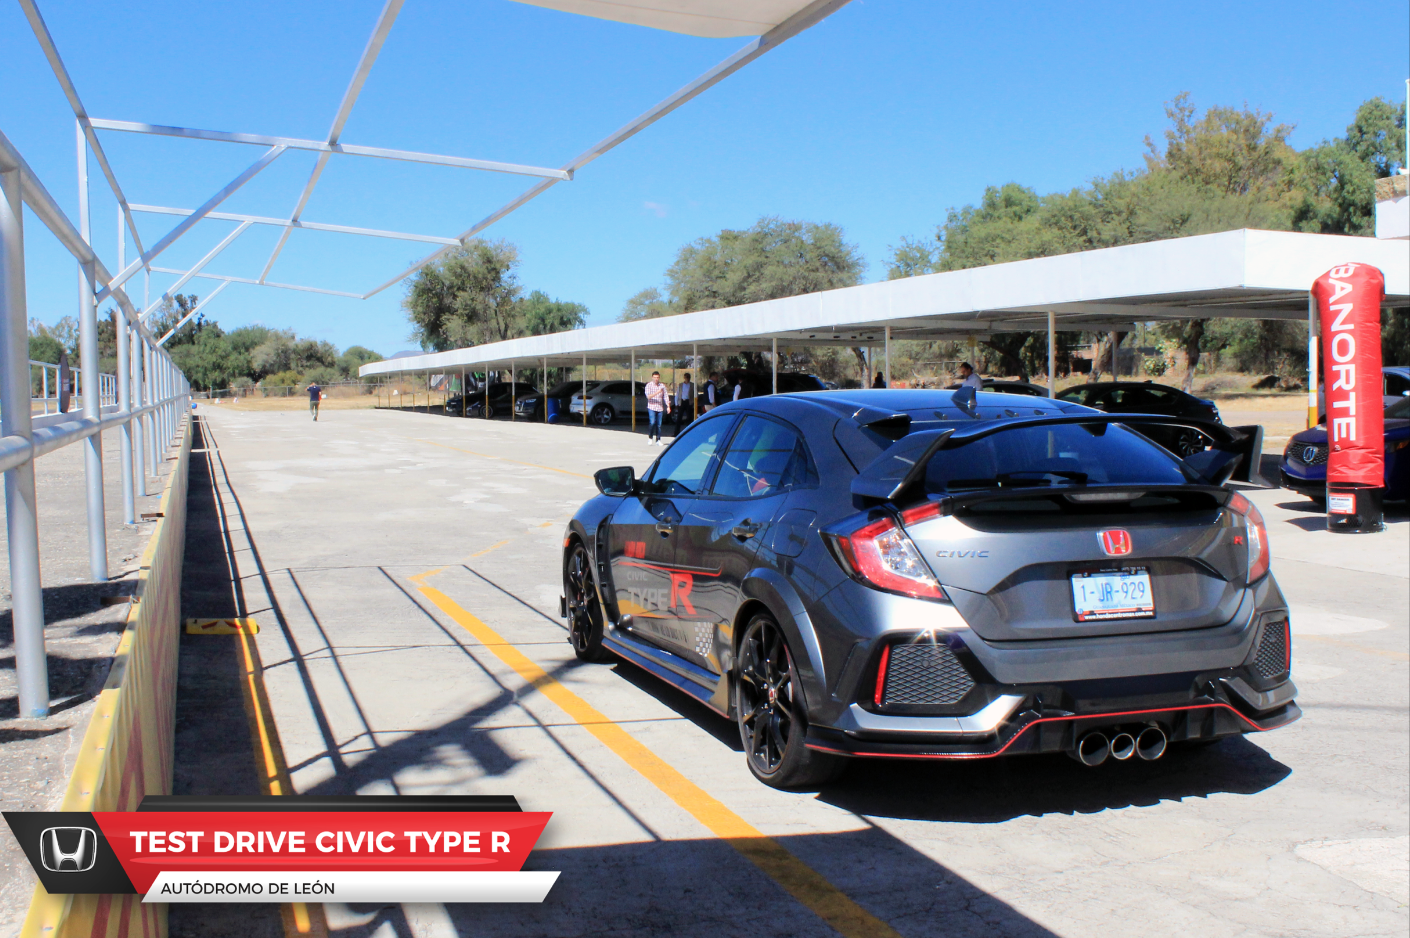 Drive Test Civic Type-R